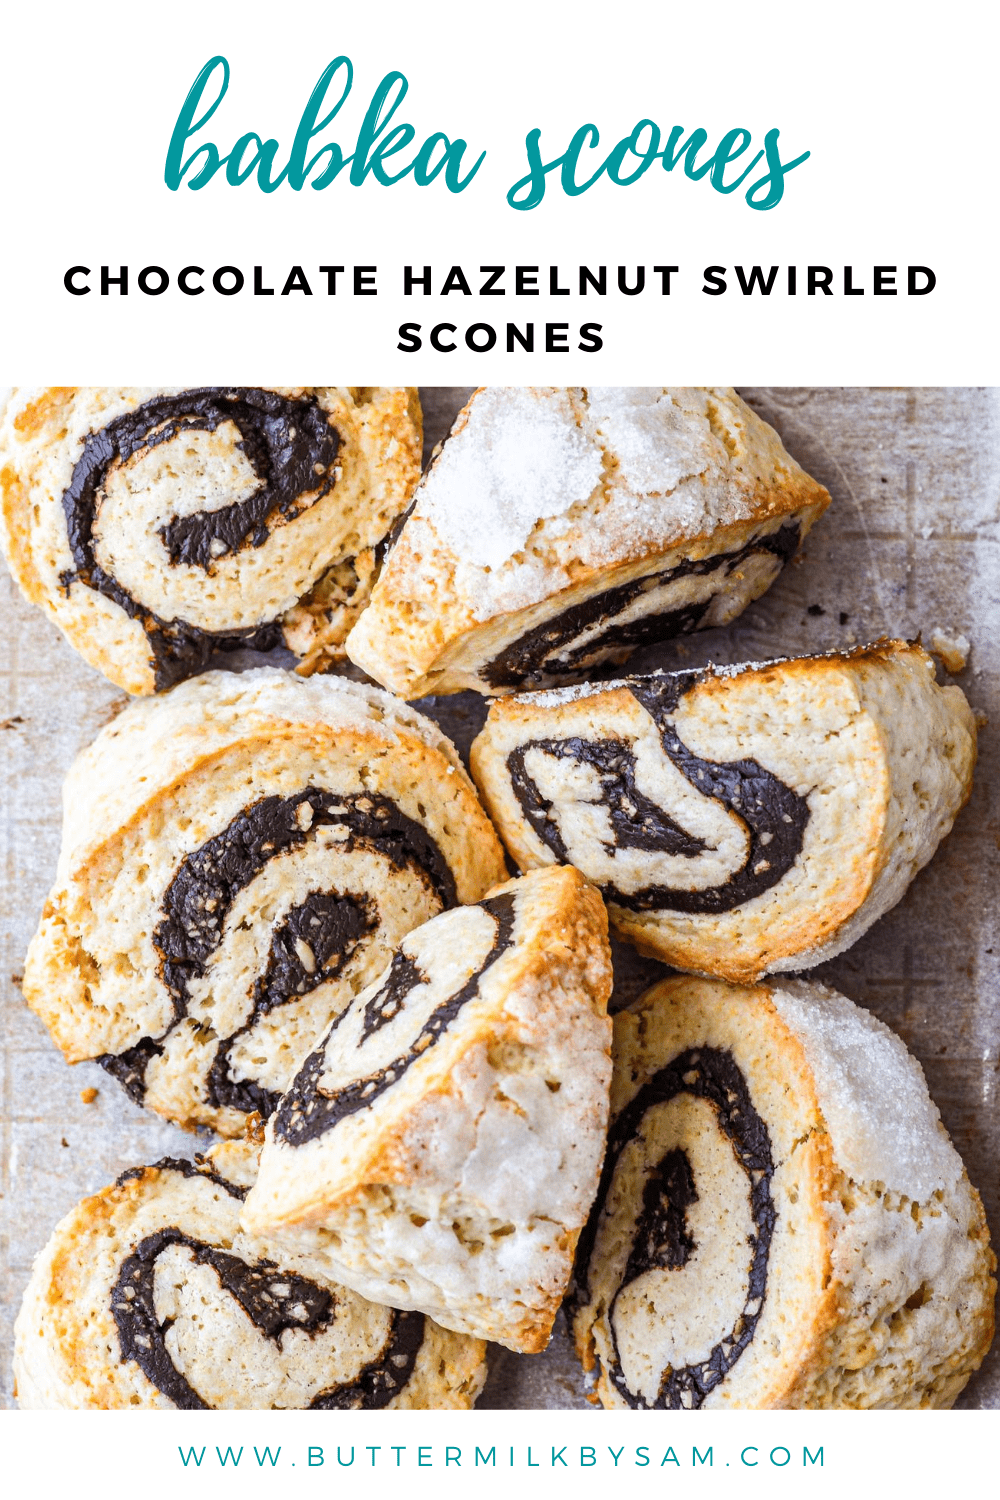 Babka Style Scones Chocolate Hazelnut Buttermilk By Sam Recipe In 2020 Chocolate Hazelnut Scones Sweet Recipes Desserts